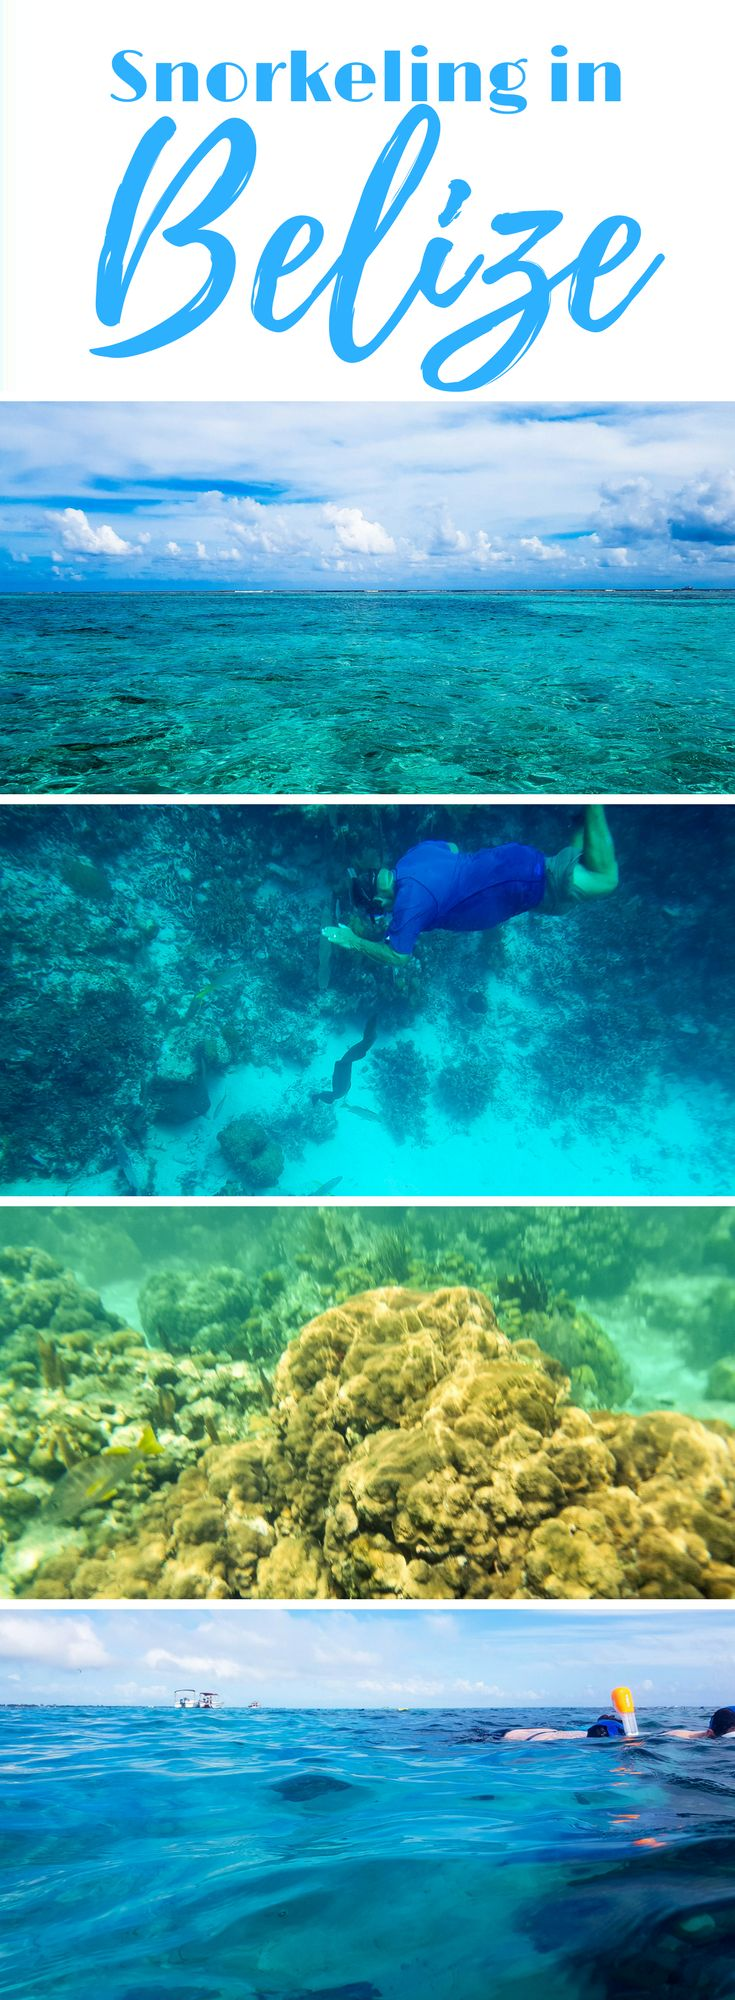 Snorkeling in Caye Caulker Natural Reserve | caye caulker | snorkeling in belize | diving in the blue hole belize | snorkeling in caye caulker belize | where to snorkel in belize | shark alley belize | swim with sting rays in belize | swim with sharks in belize | nurse sharks belize |